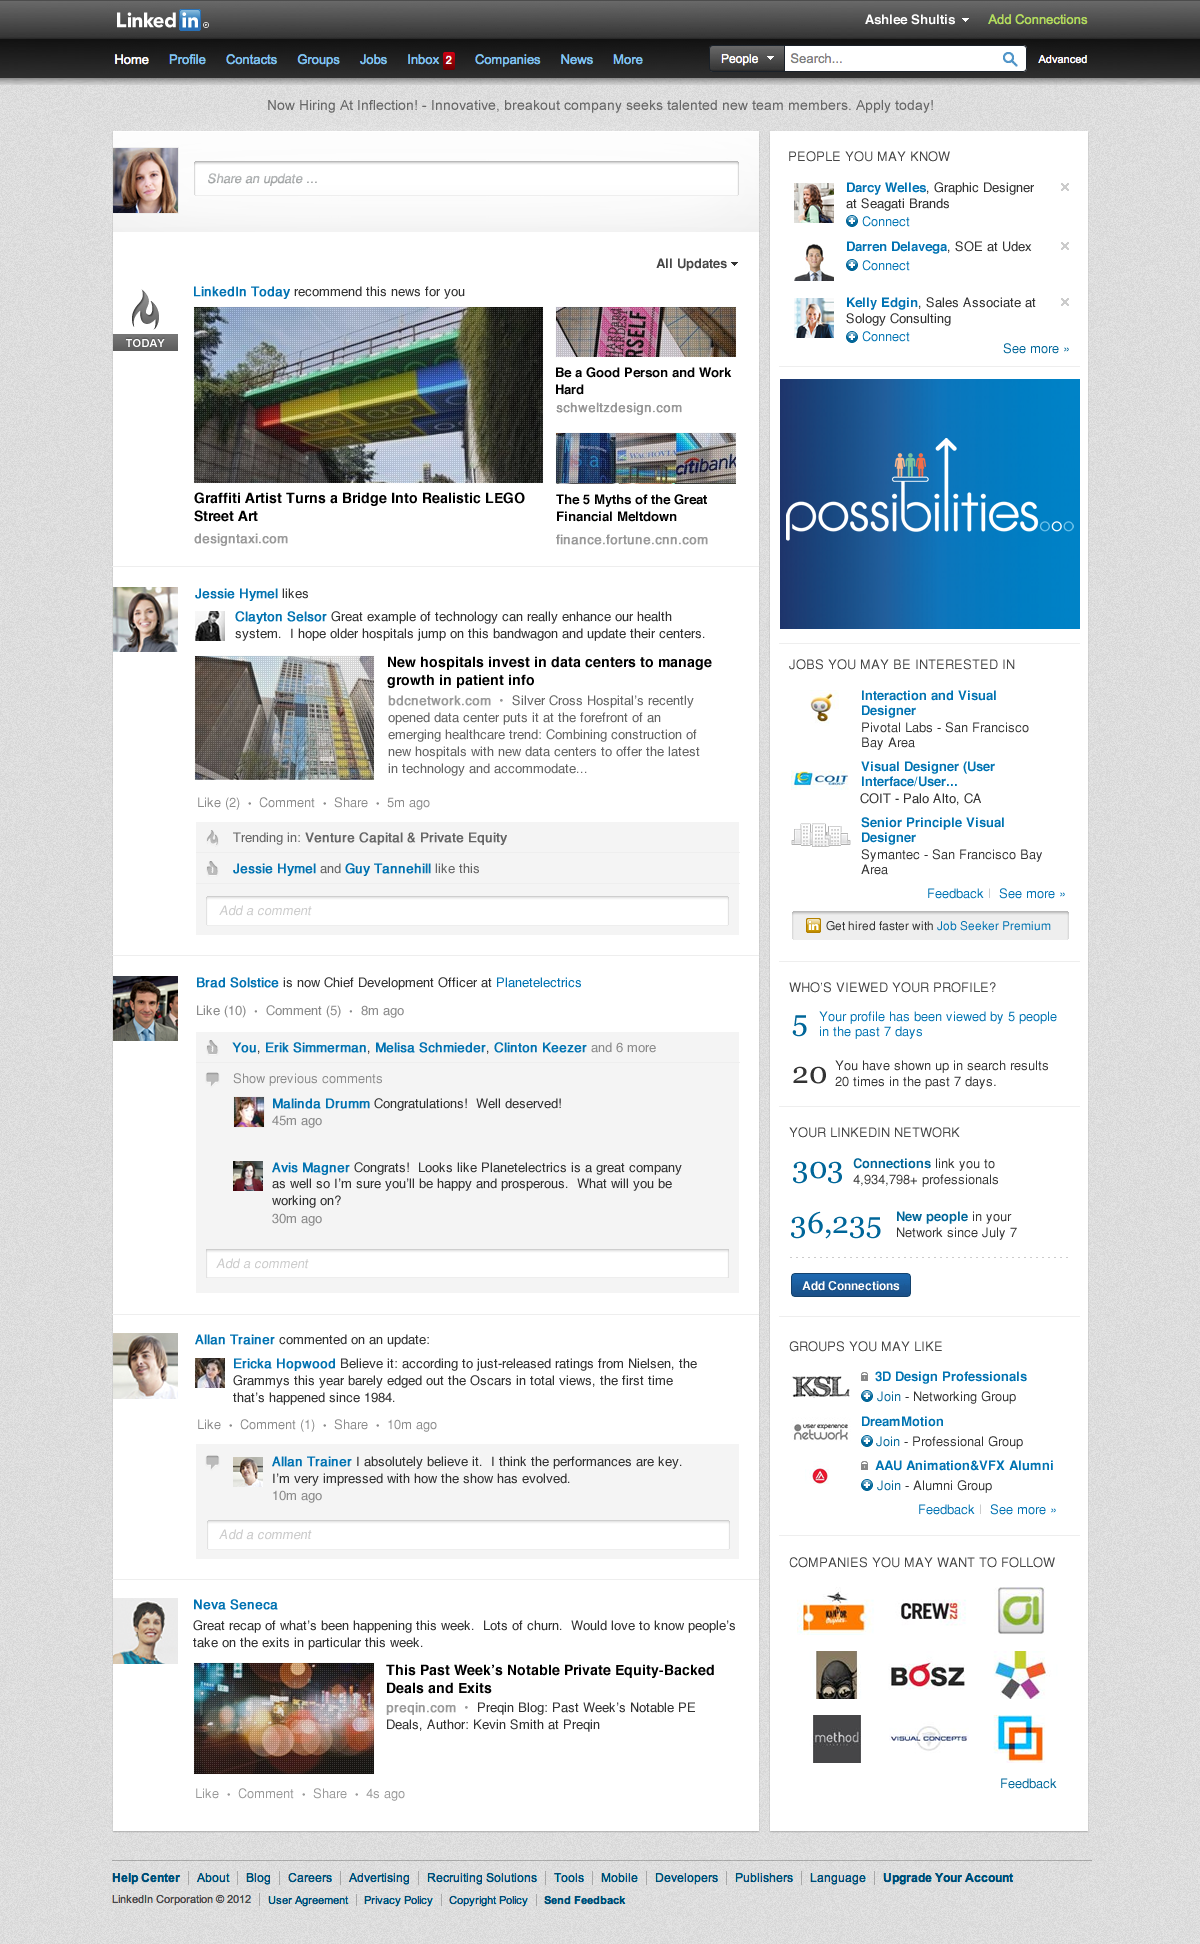 linkedin introduce un nuovo design per l 39 homepage